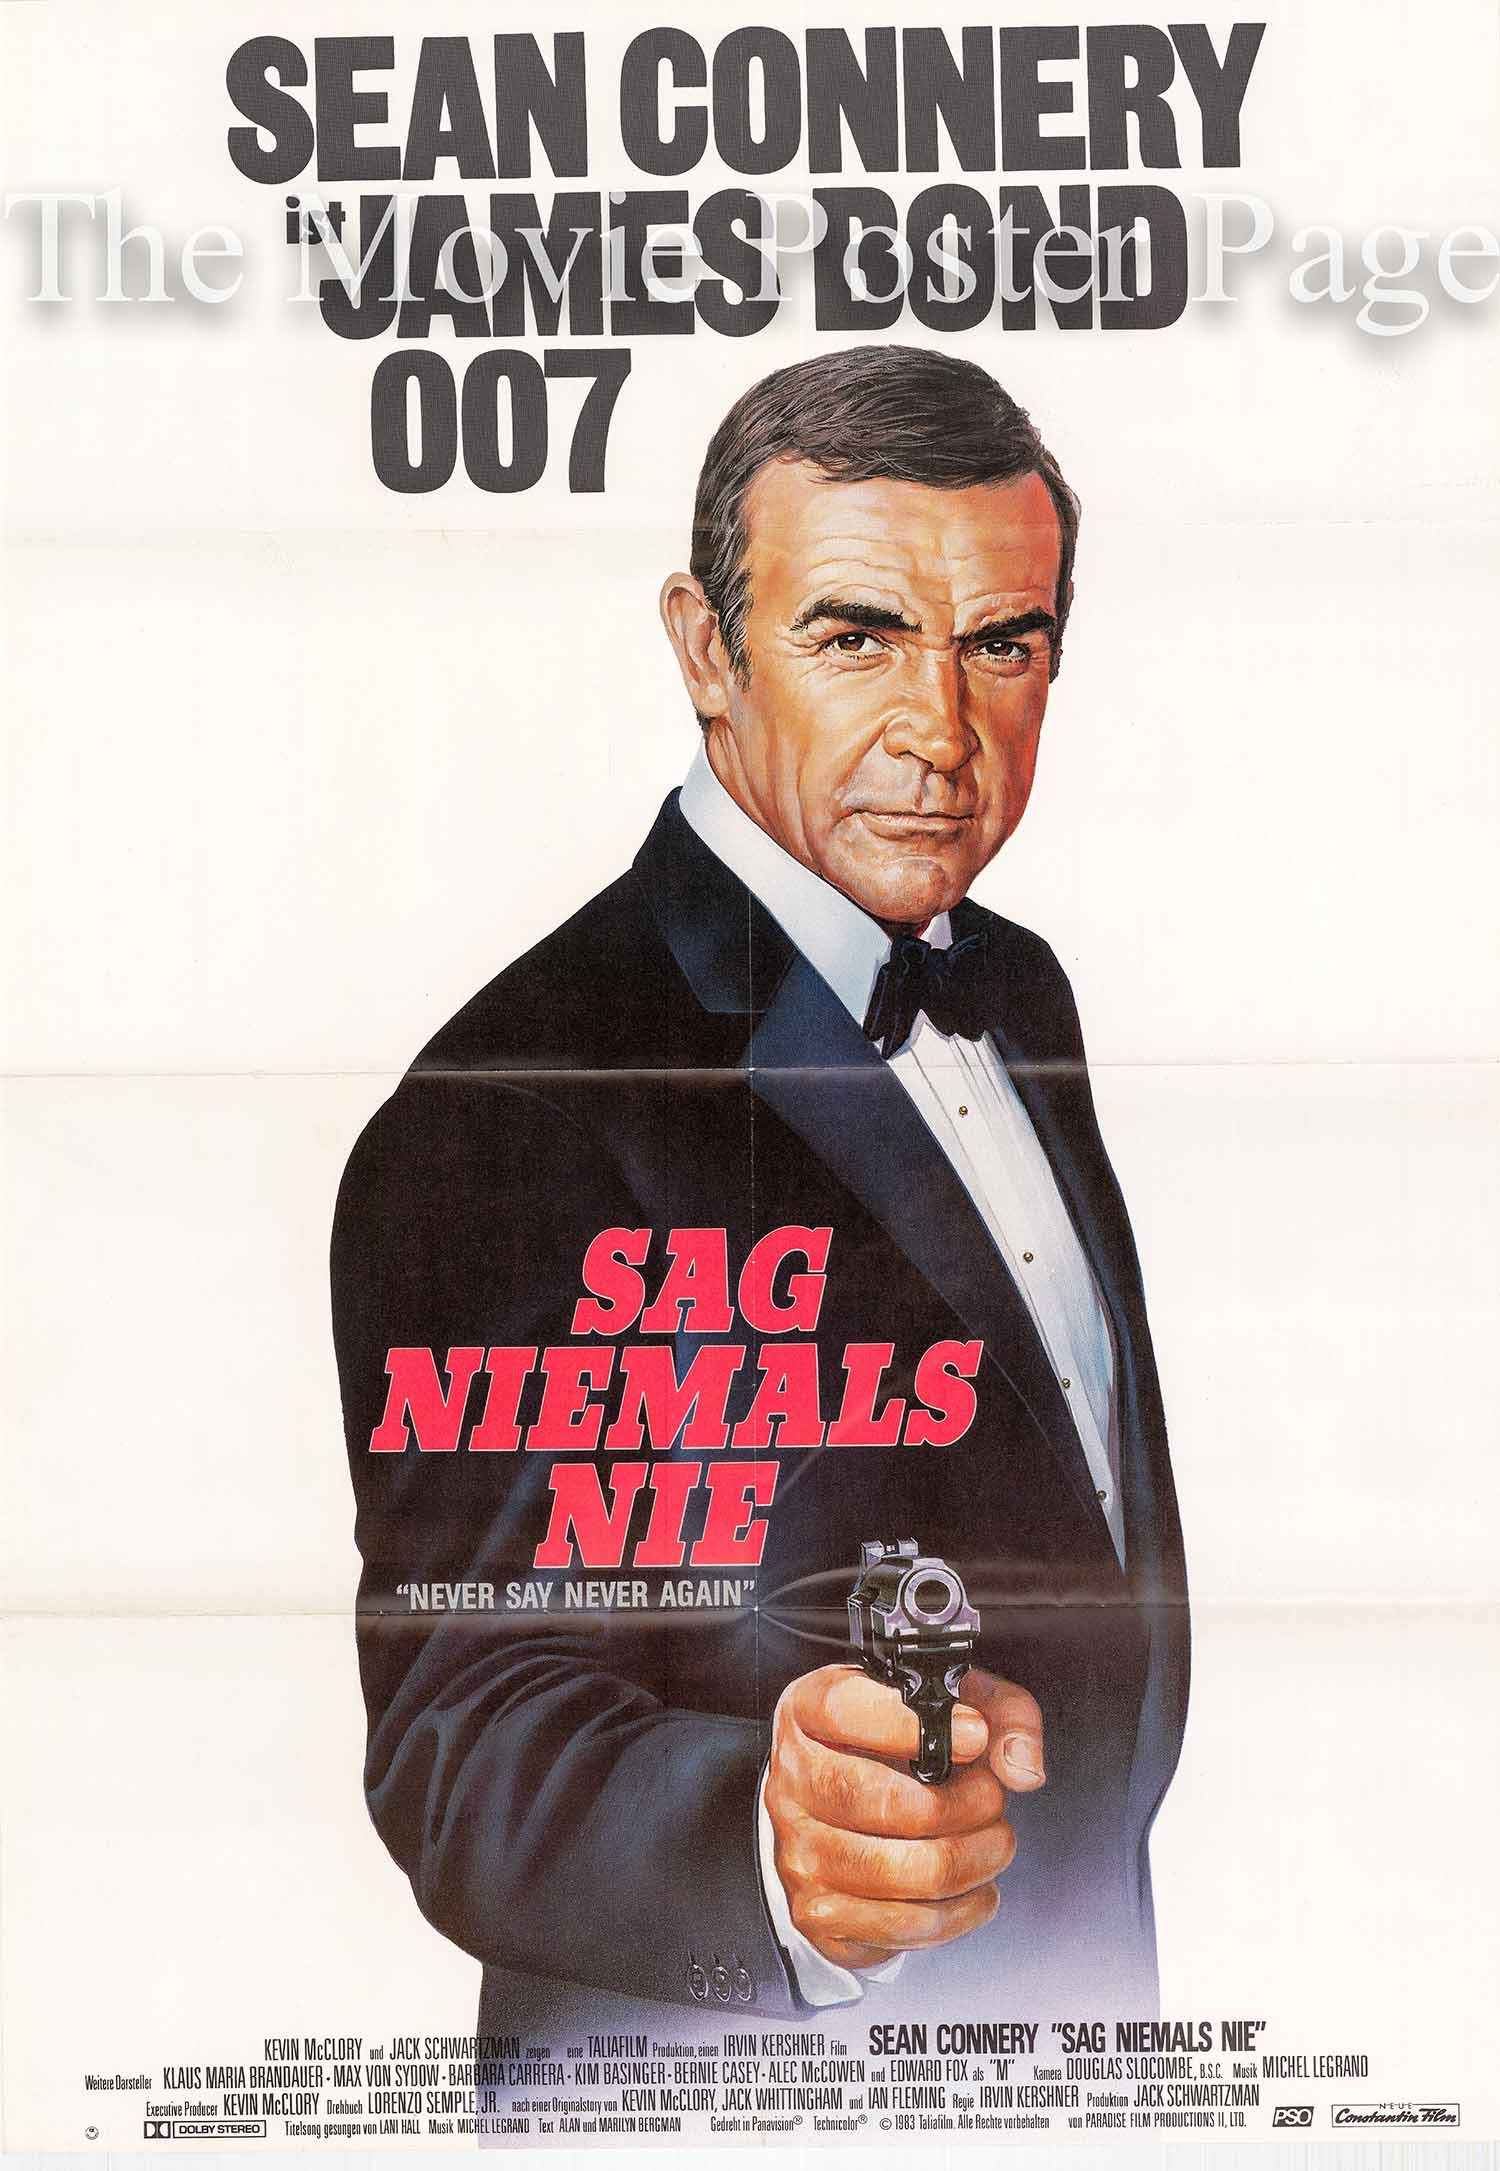 Pictured is a German 23x33 poster made to promote the 1983 Irvin Kershner film Never Say Never Again starring Sean Connery as James Bond.